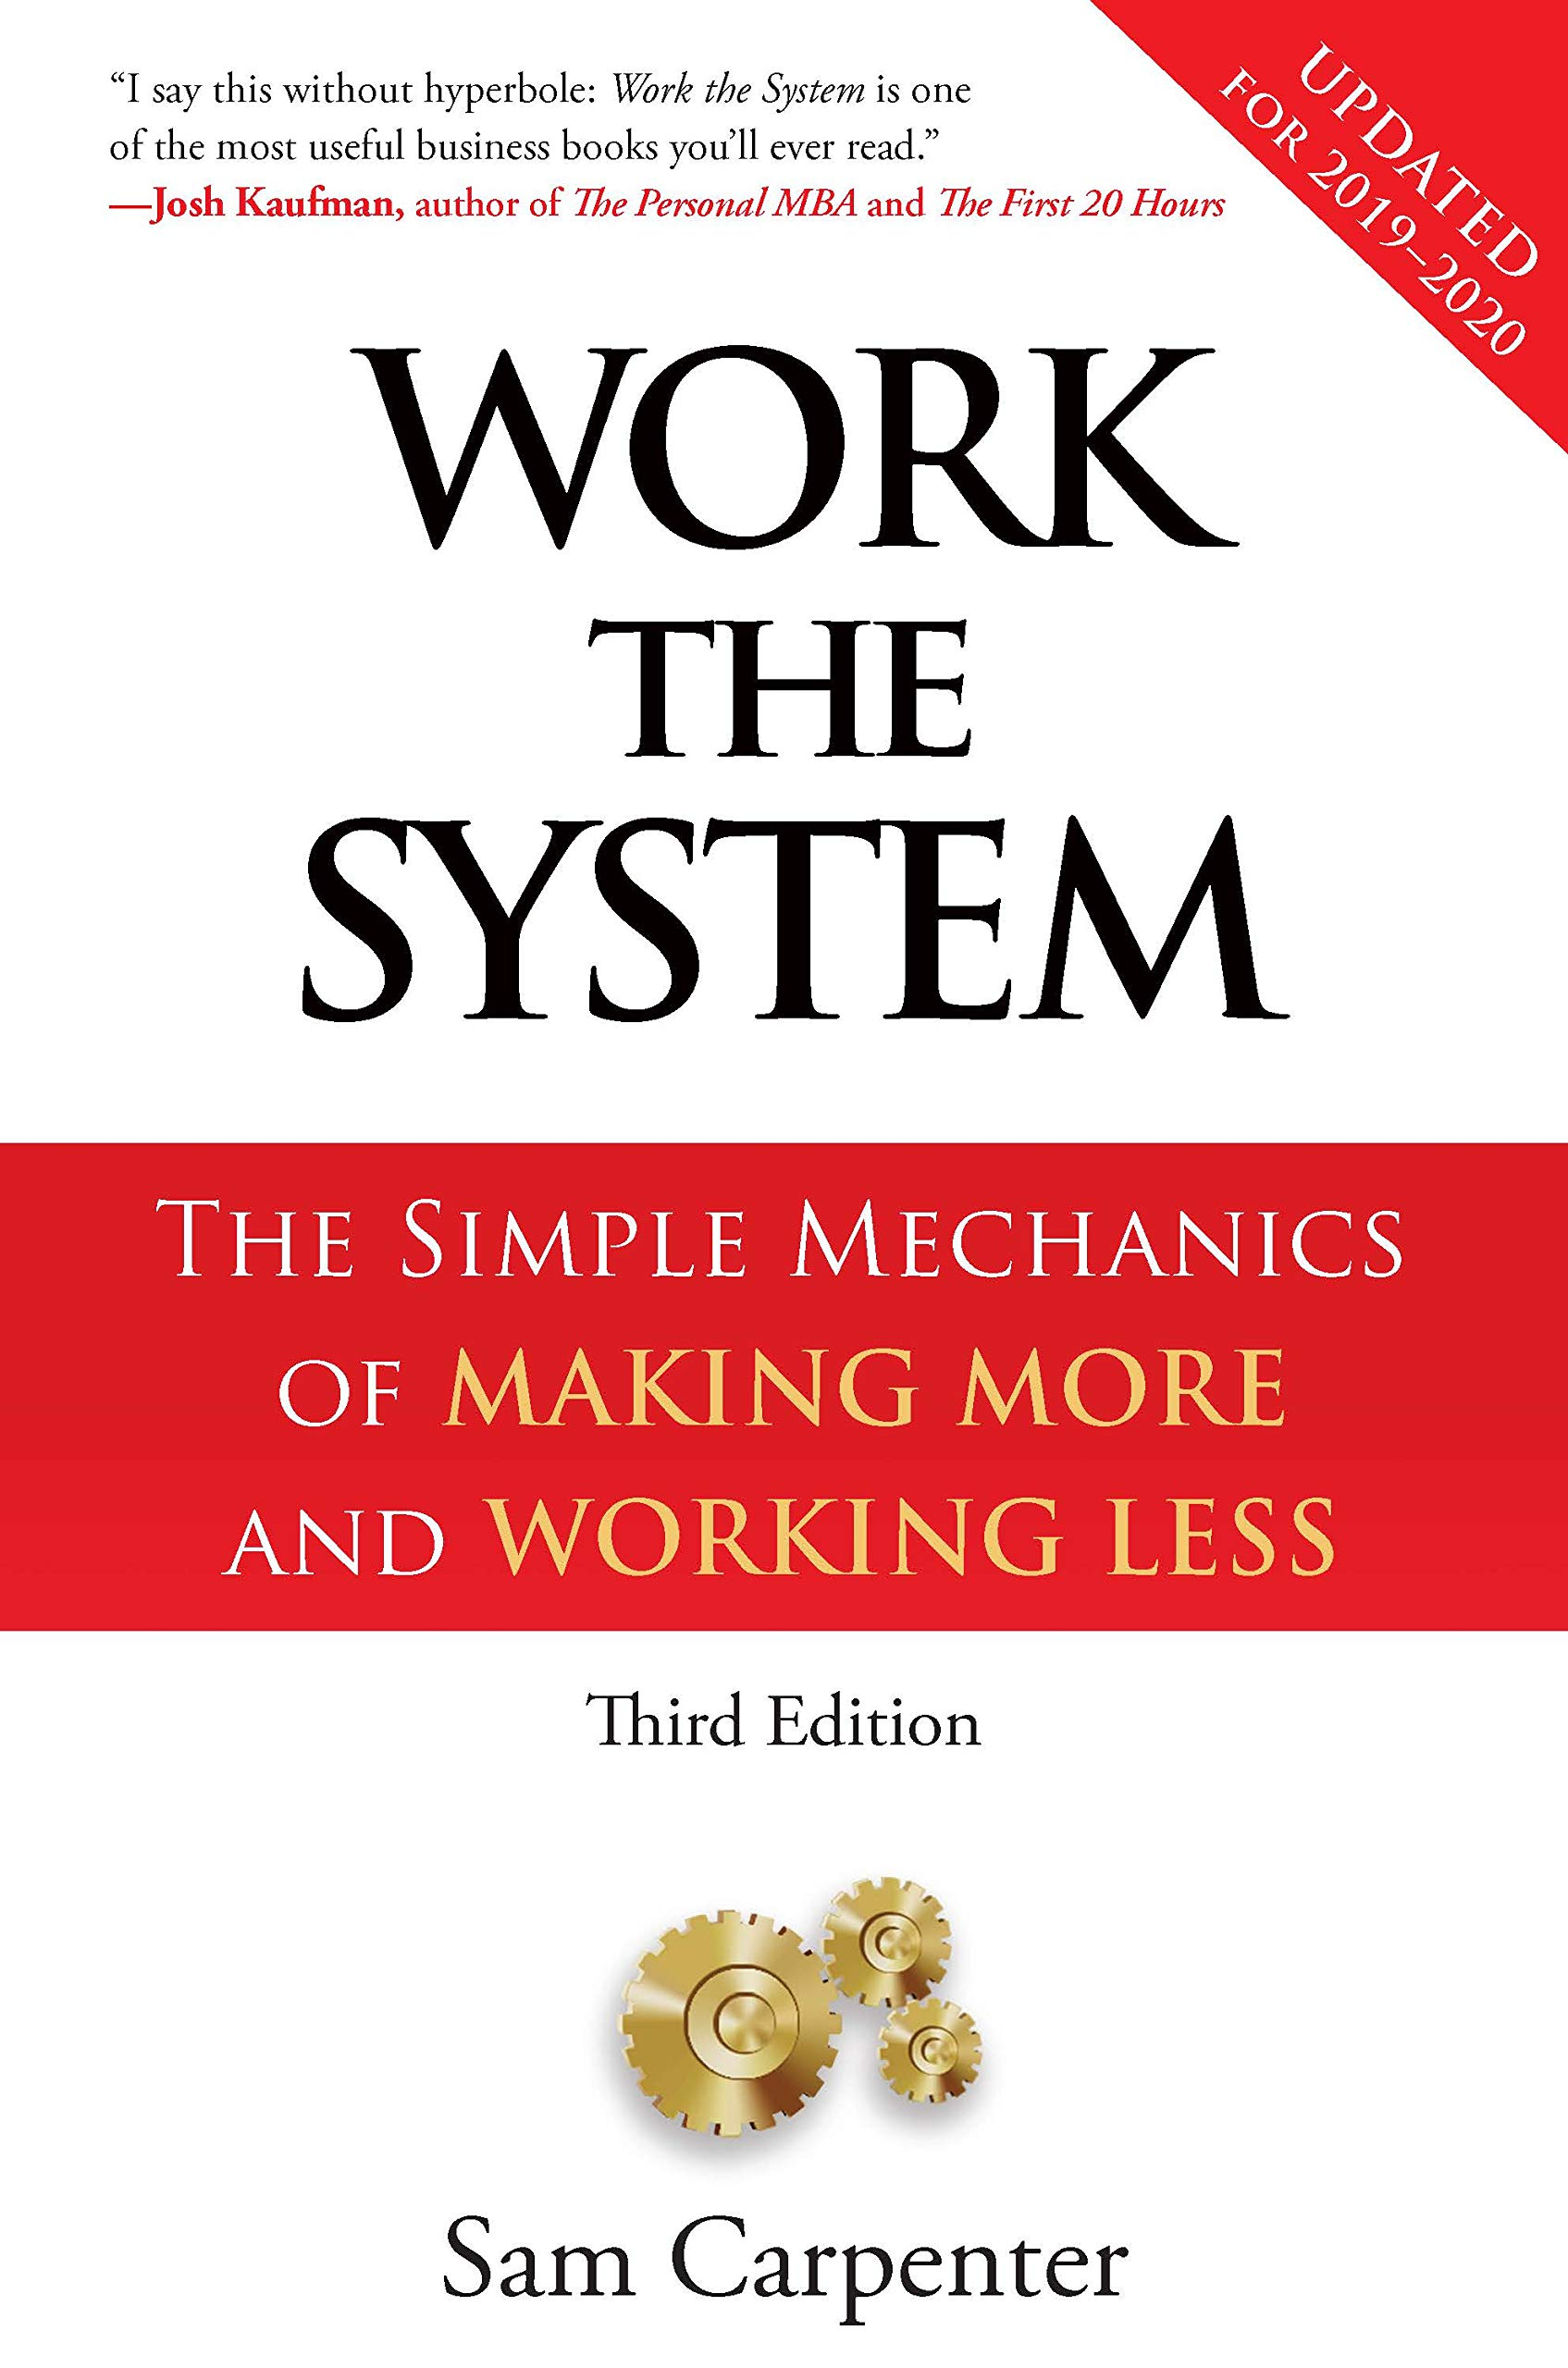 WORK THE SYSTEM BY SAM CARPENTER DOWNLOAD